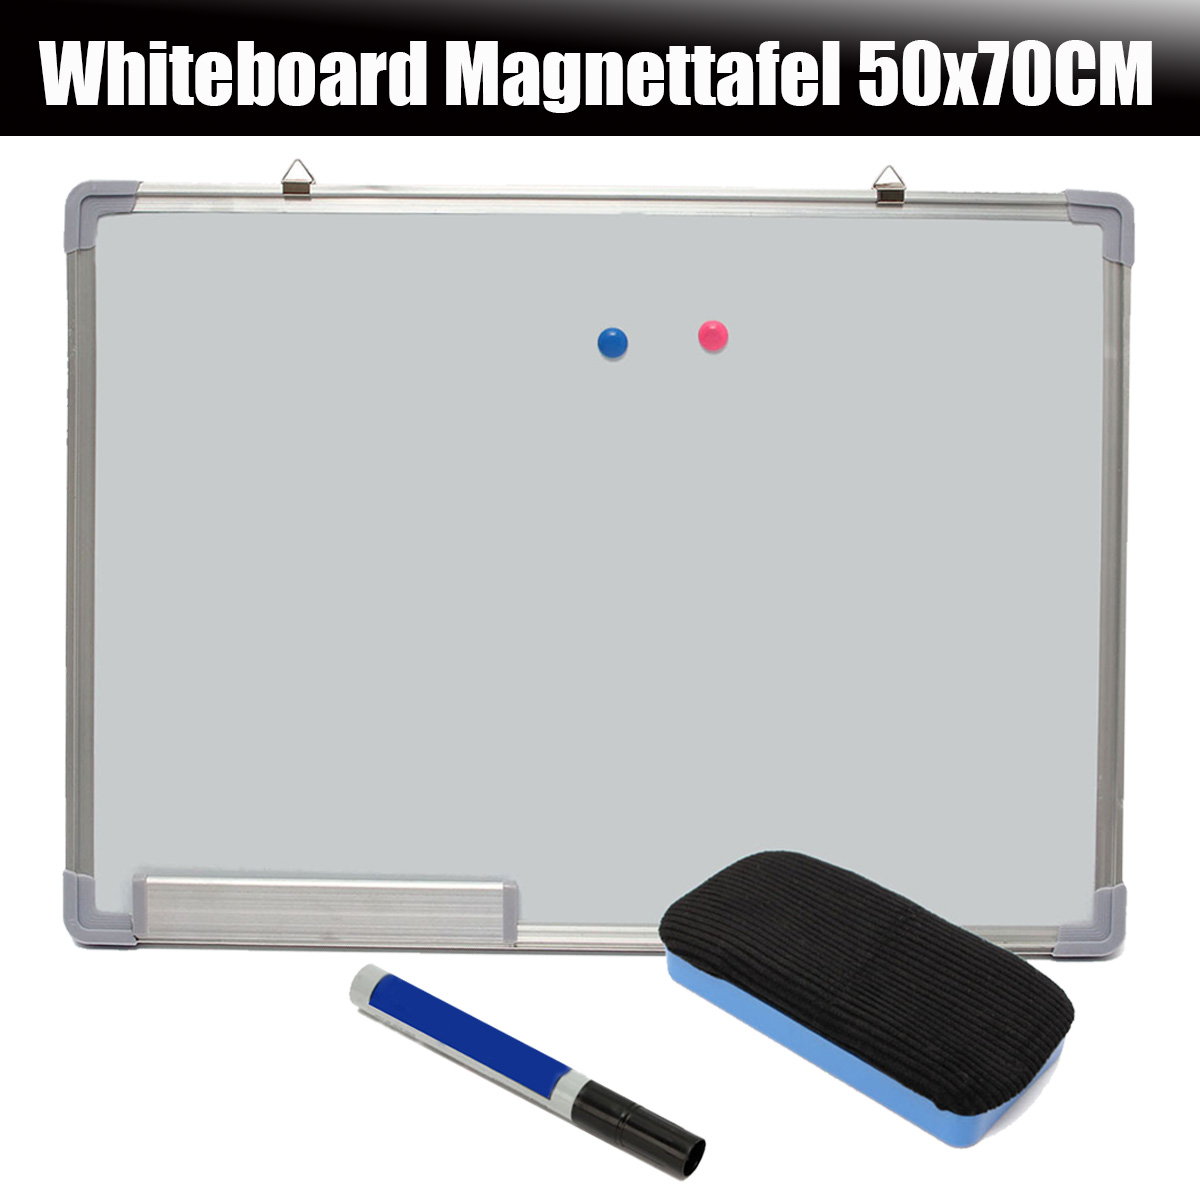 NEW 500x700MM Magnetic Whiteboard Writing Board Double Side With Pen Erase Magnets Buttons For Office School